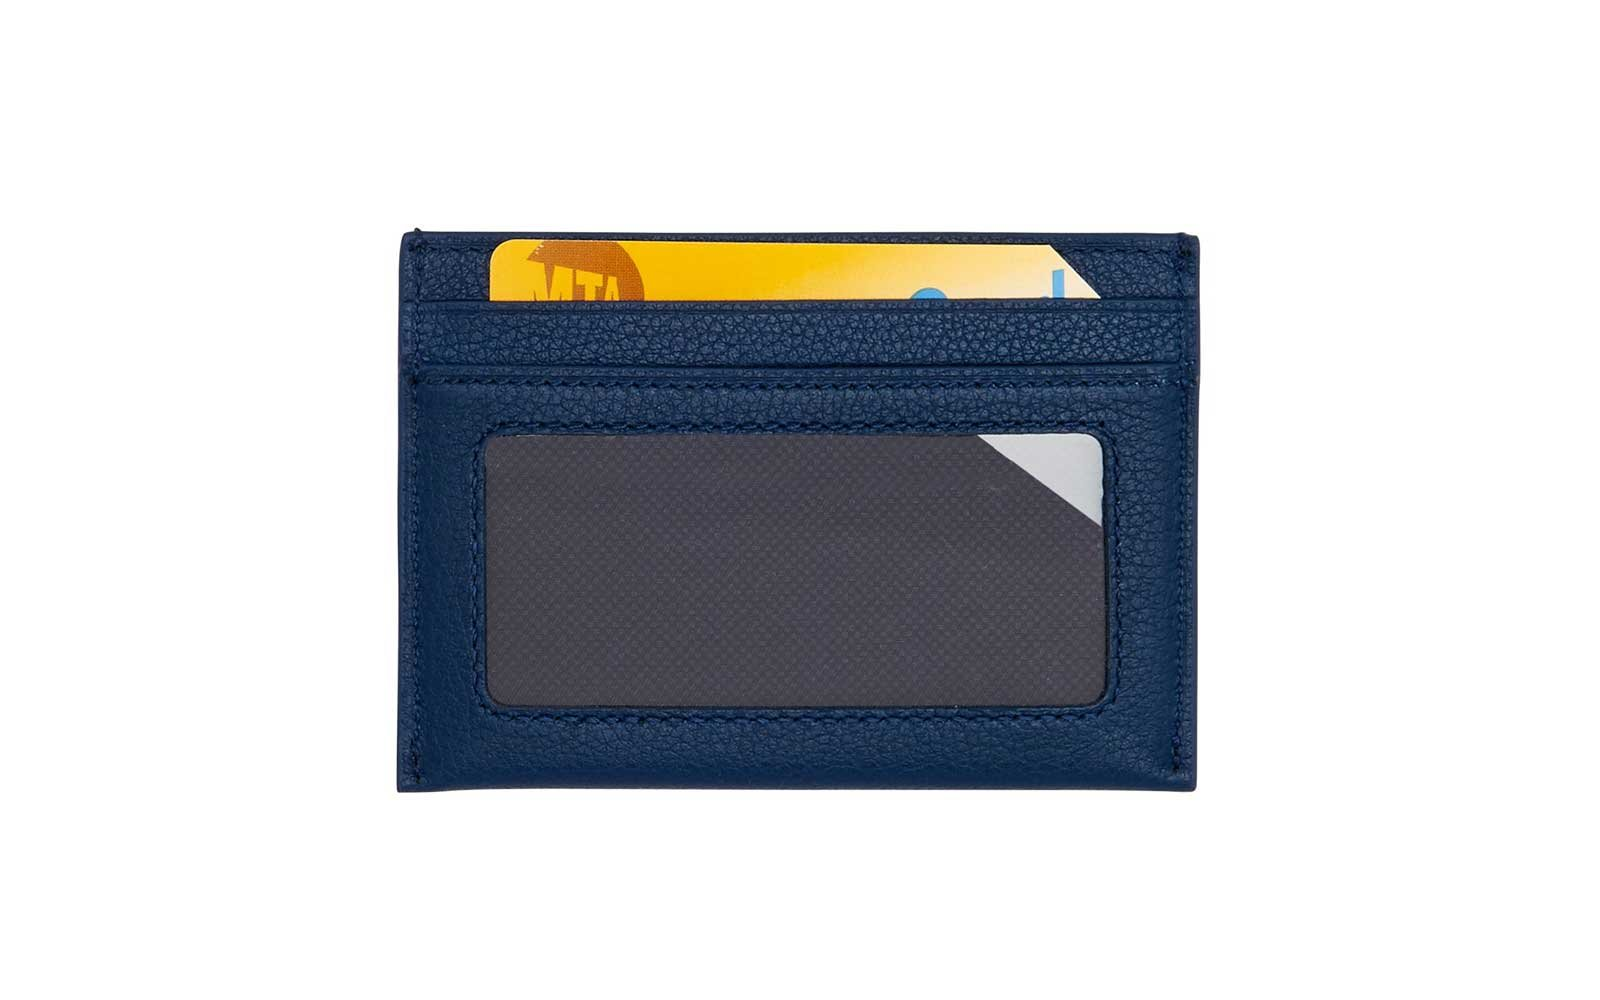 The Best Travel Wallets for Men | Travel + Leisure